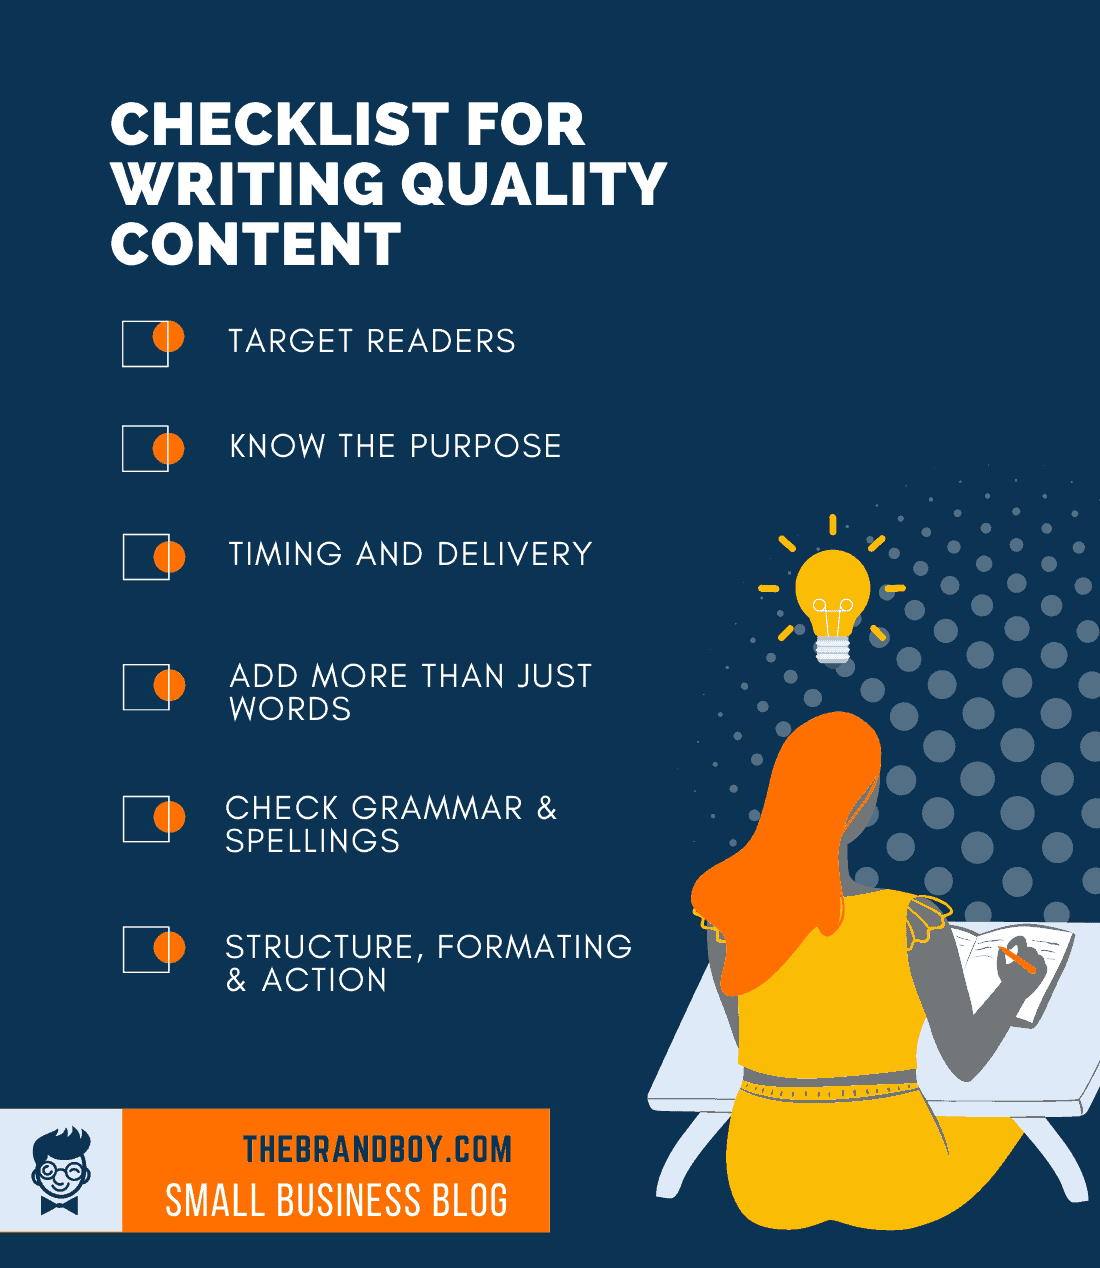 checklist for writing quality content